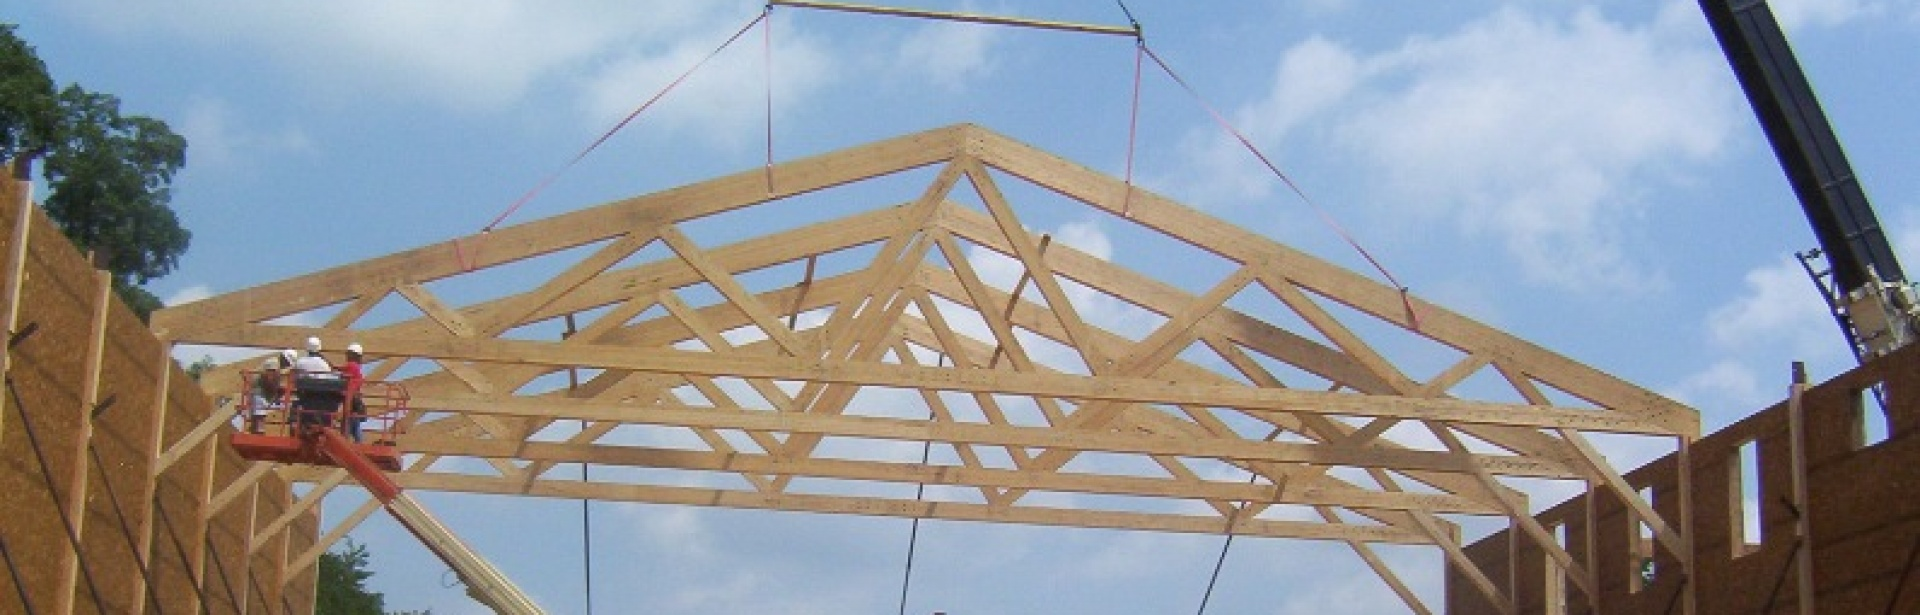 Gruen wald engineered laminates engineered beauty for Engineered roof trusses prices